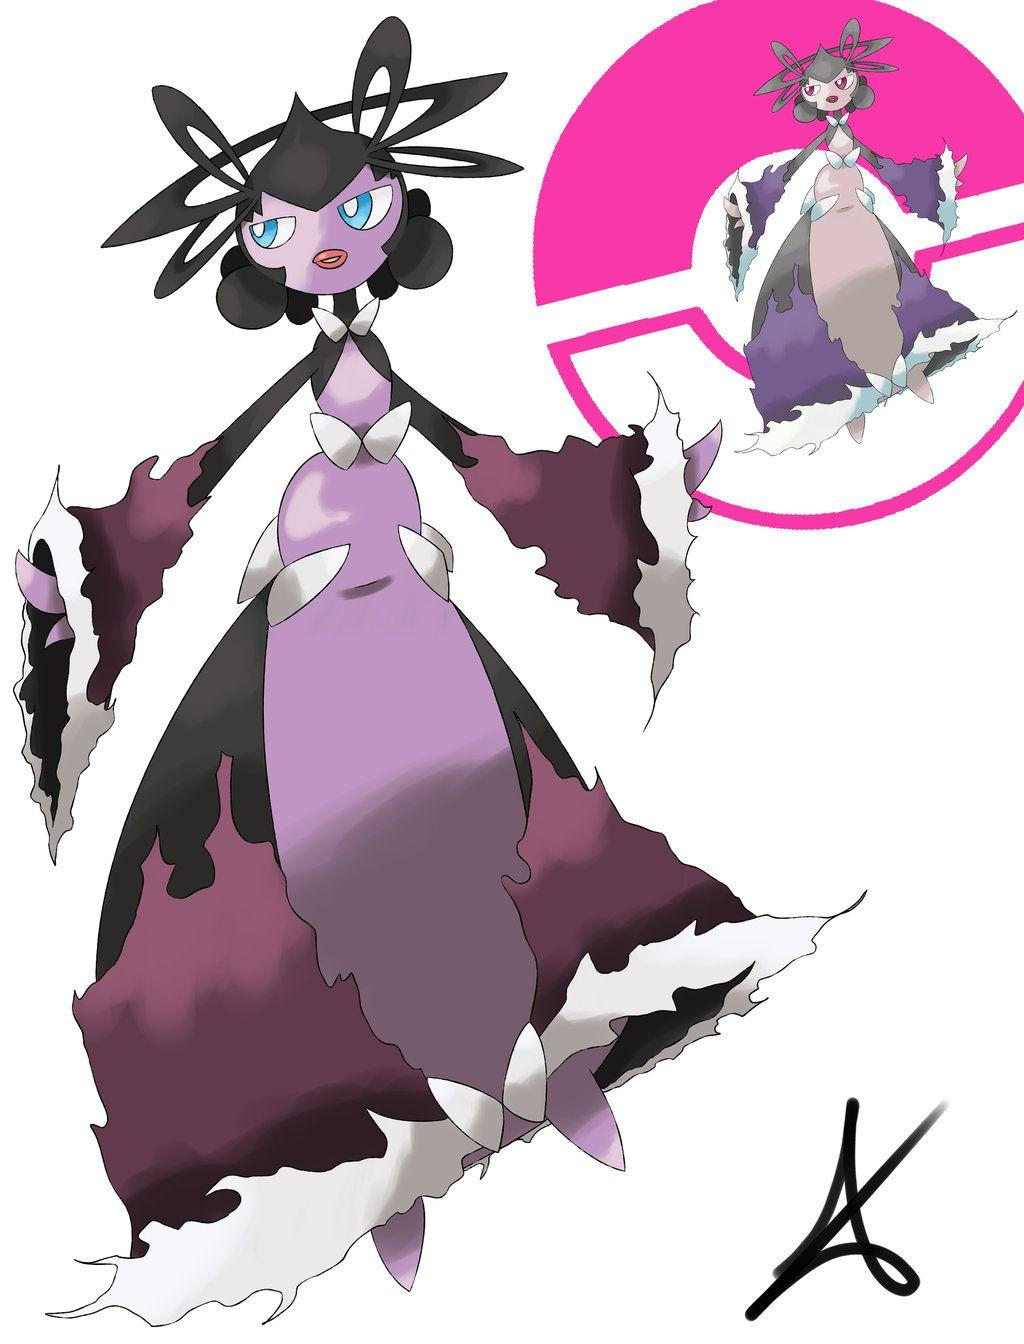 Mega Gothitelle (Sugimori Style) by MexieChan on DeviantArt